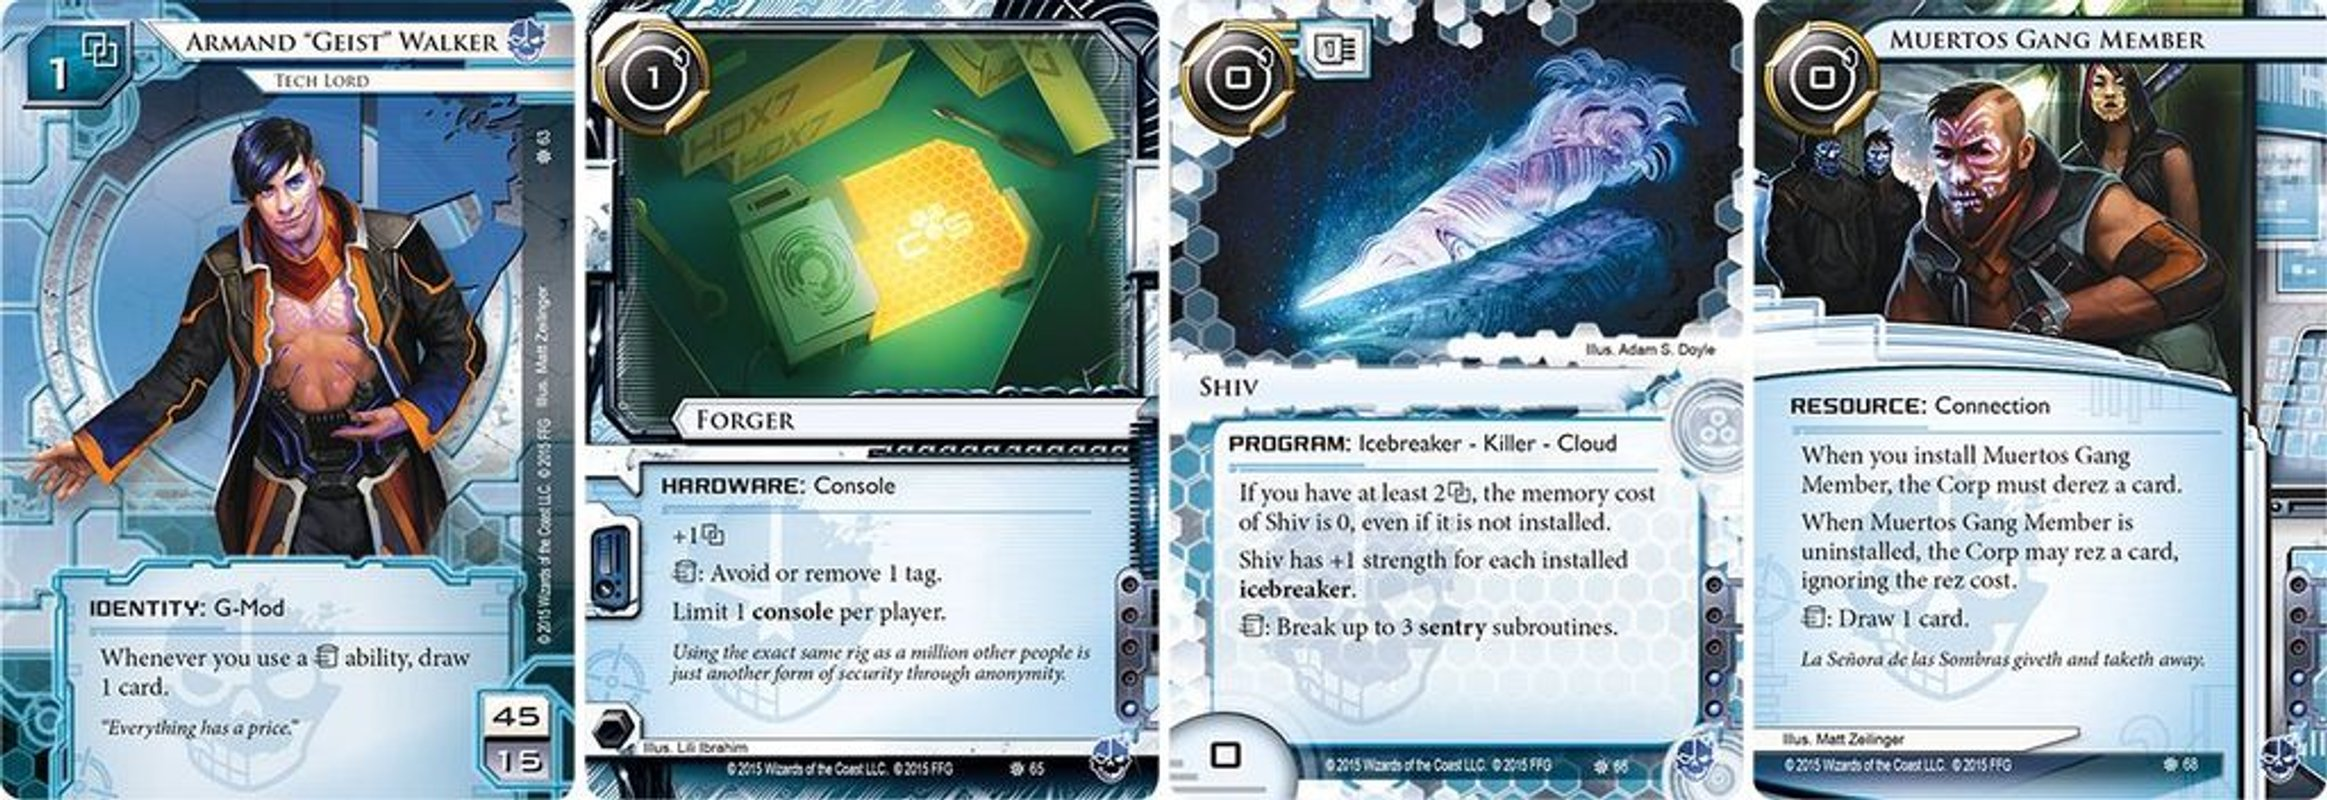 Android: Netrunner - The Underway cards